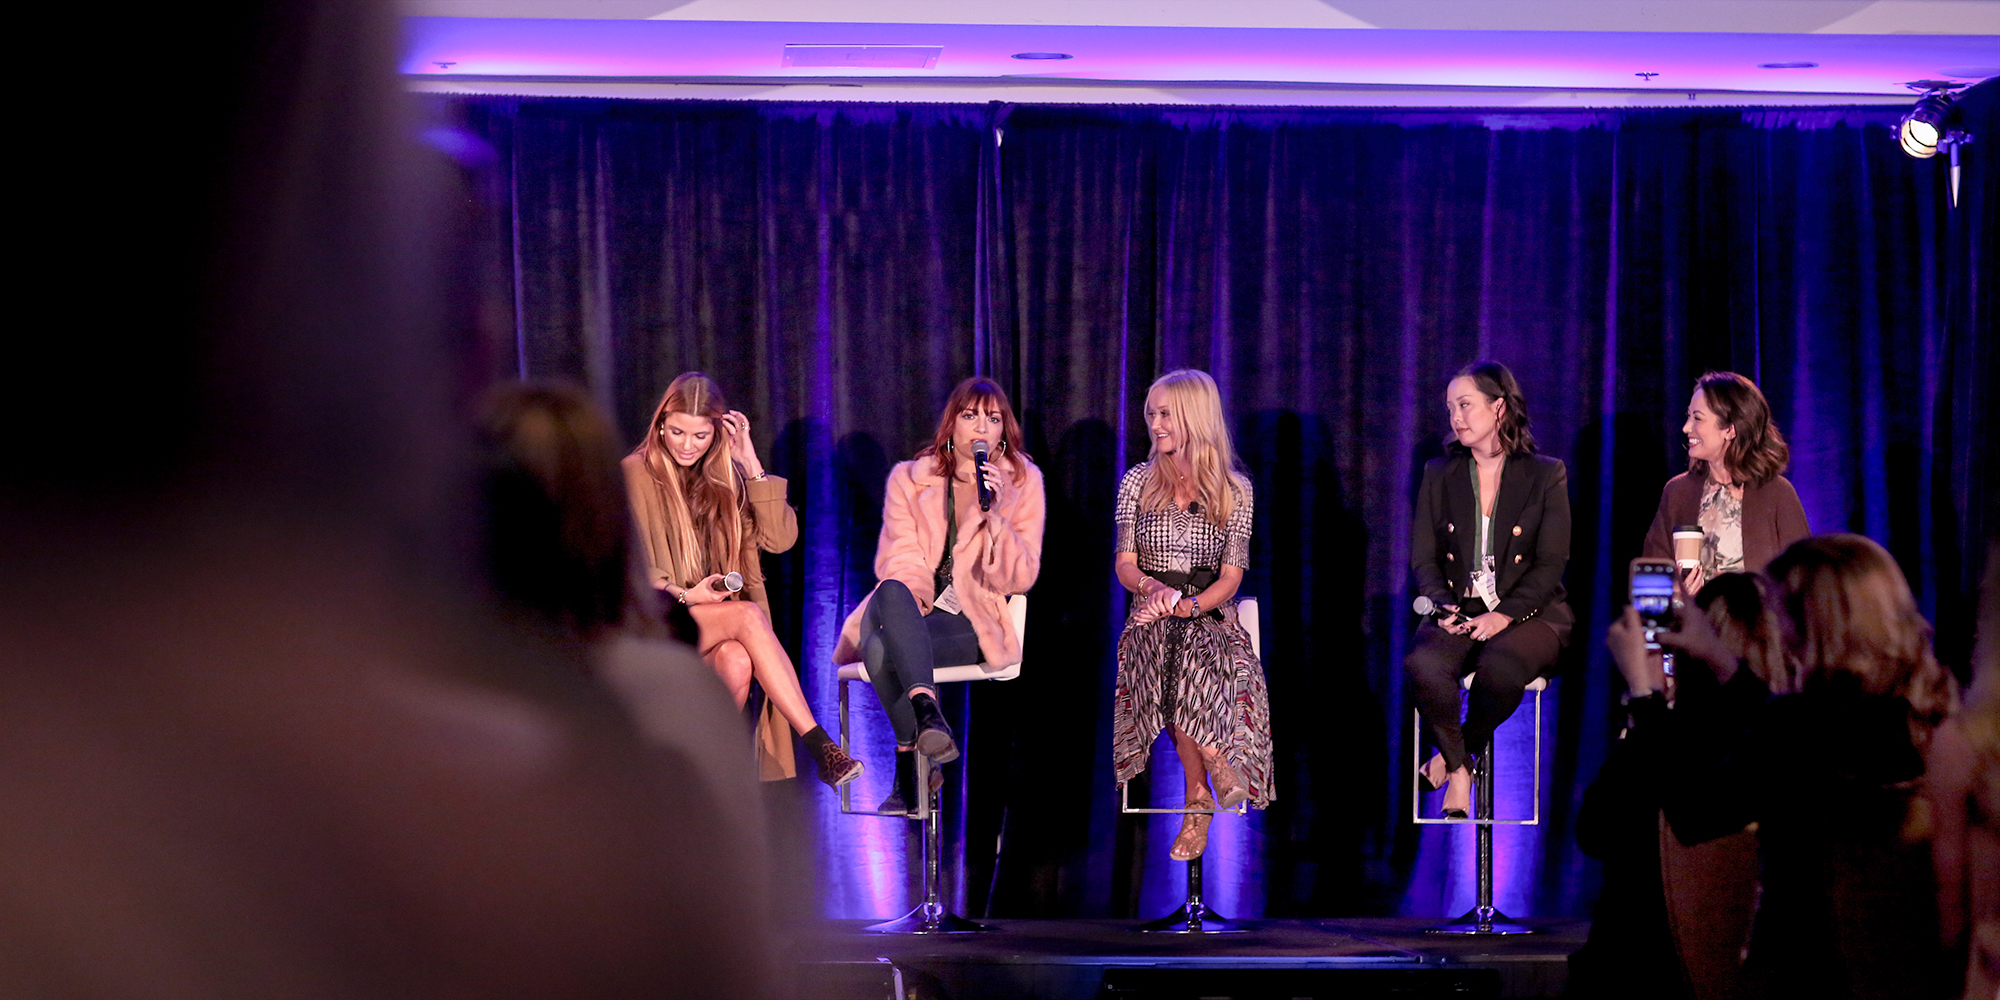 Digital Influencers And Beauty Brands Discuss Fake Followers And Real Relationships During The First Day Of BeautyX